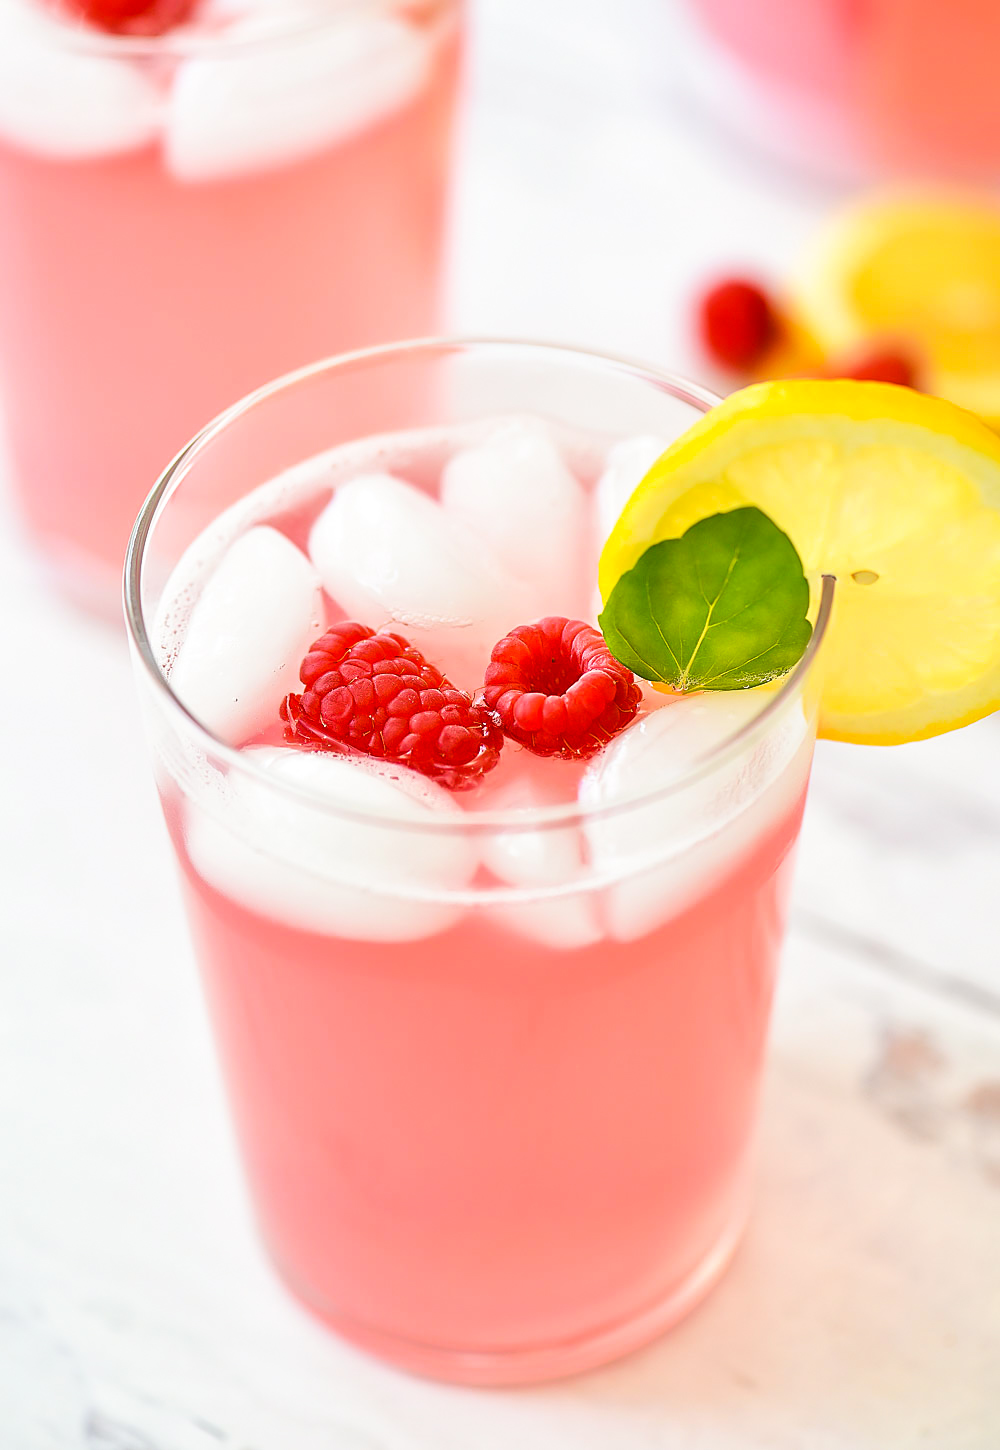 Lemonade with raspberry flavor. Garnished with raspberries, lemon and mint leaves.